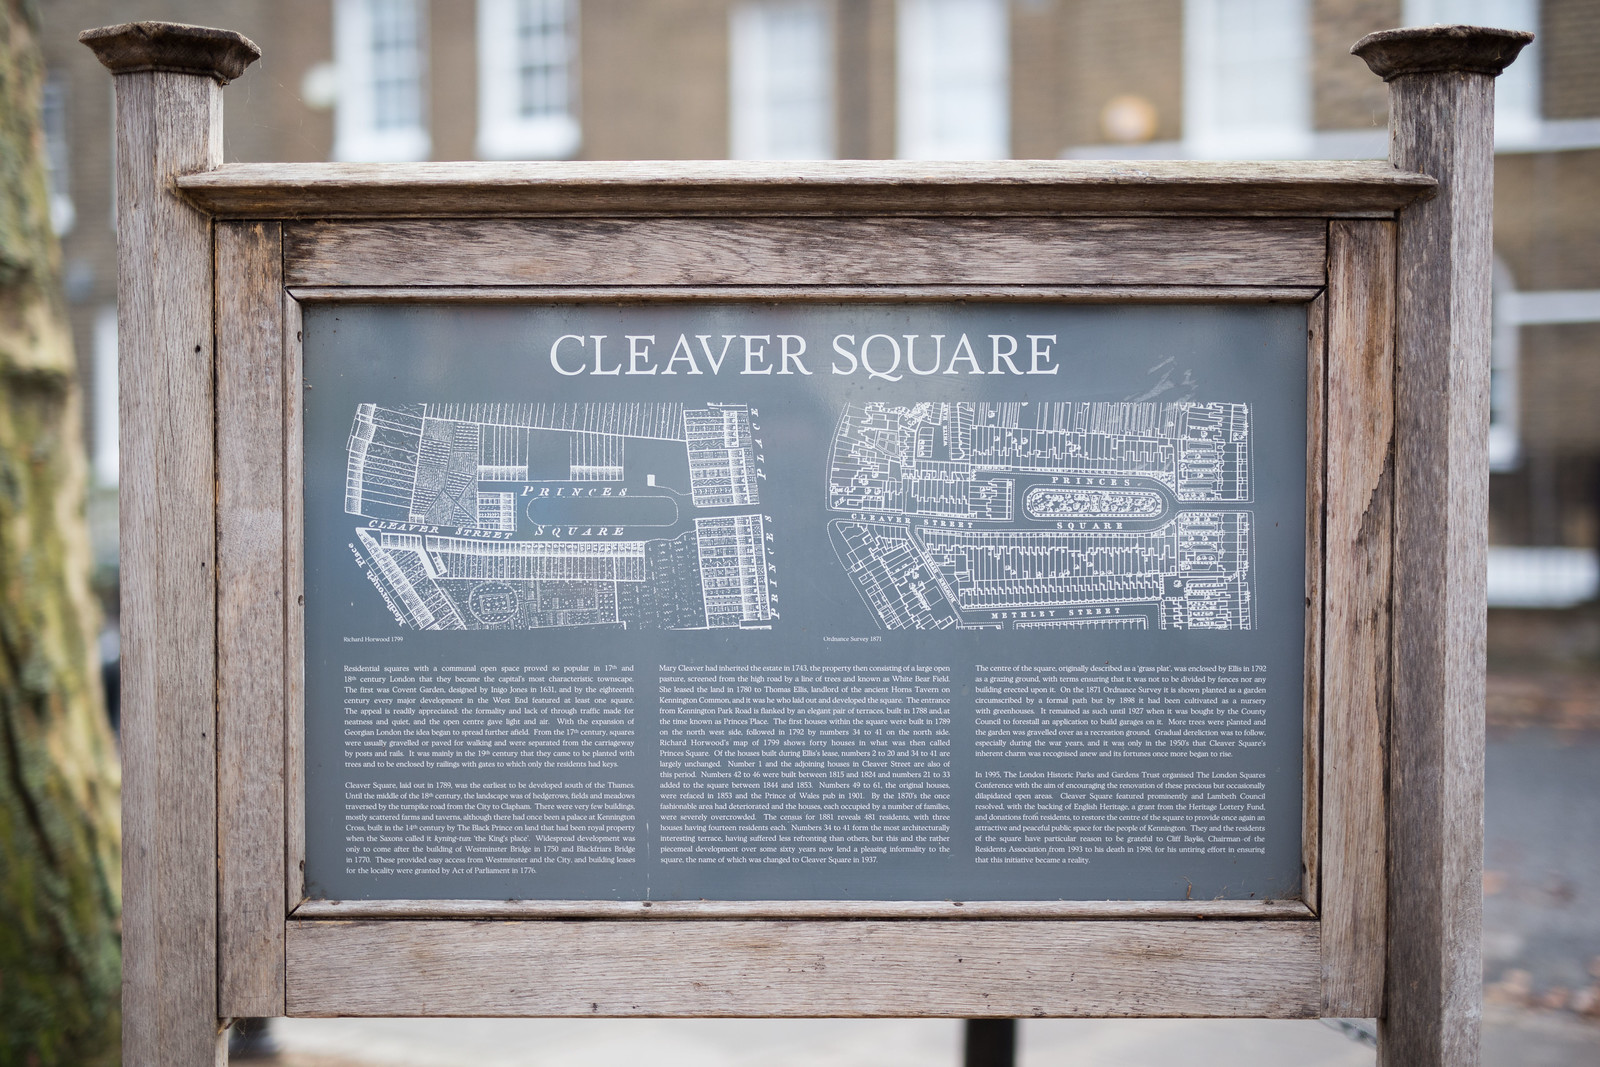 Cleaver Square